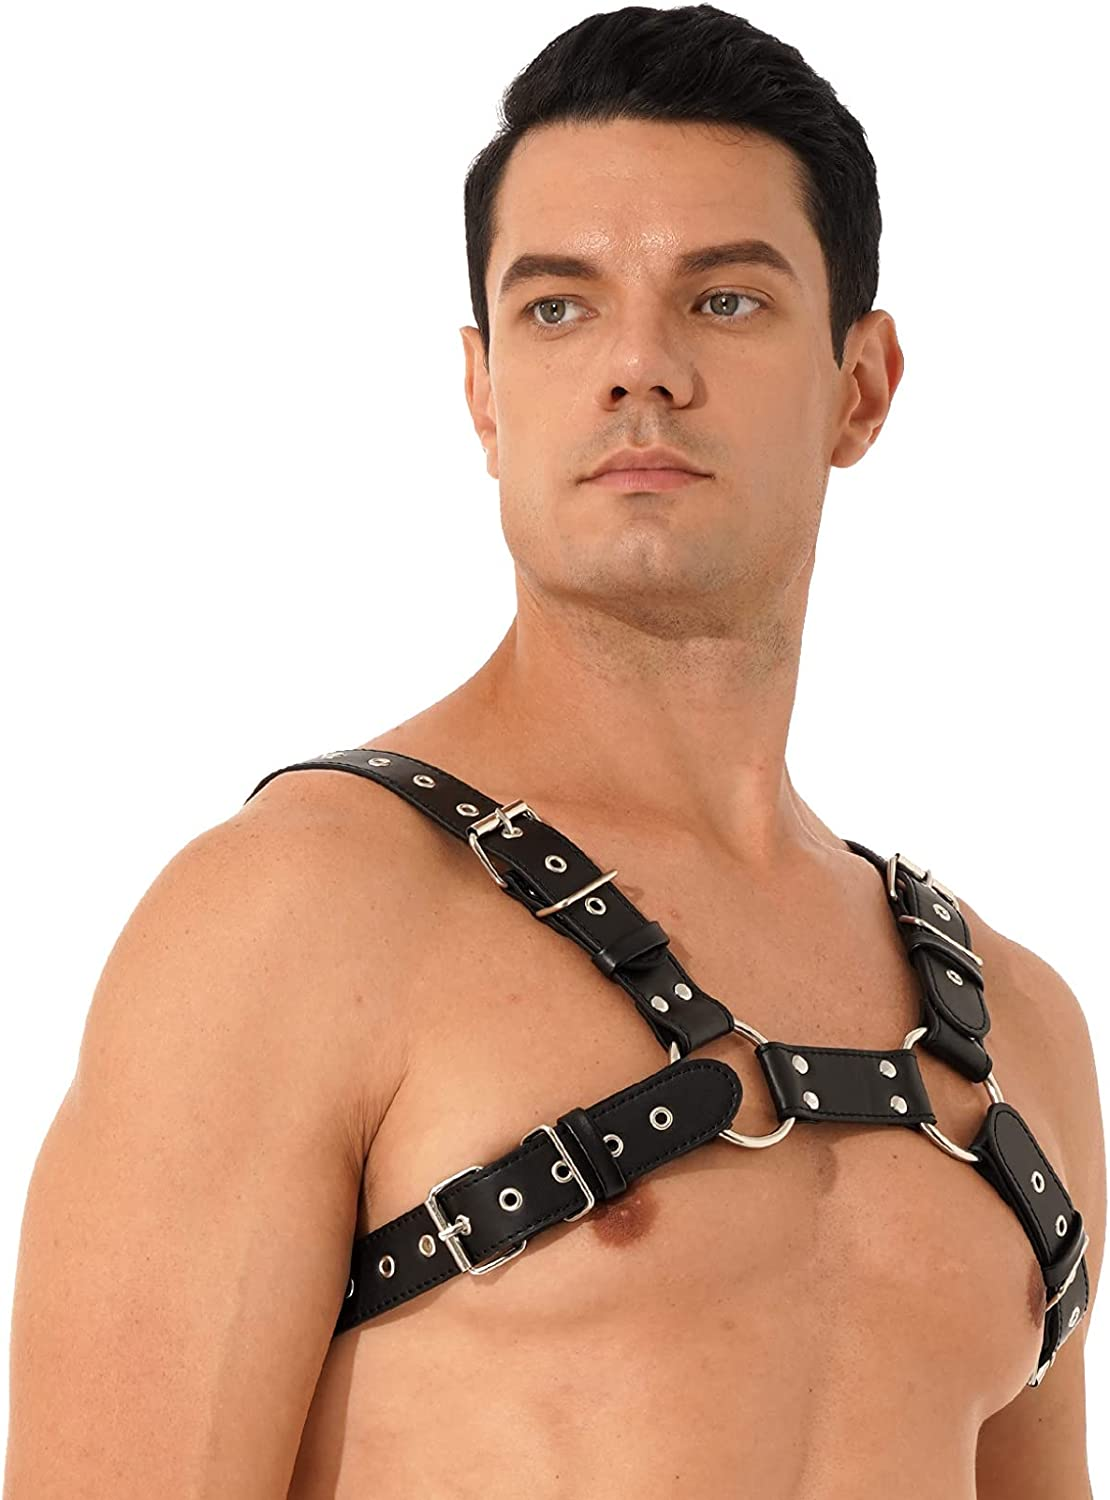 Oyolan Men Lingerie Faux Leather Harness Belt Adjustable Body Chest Harness Strap Punk Rave Costumes